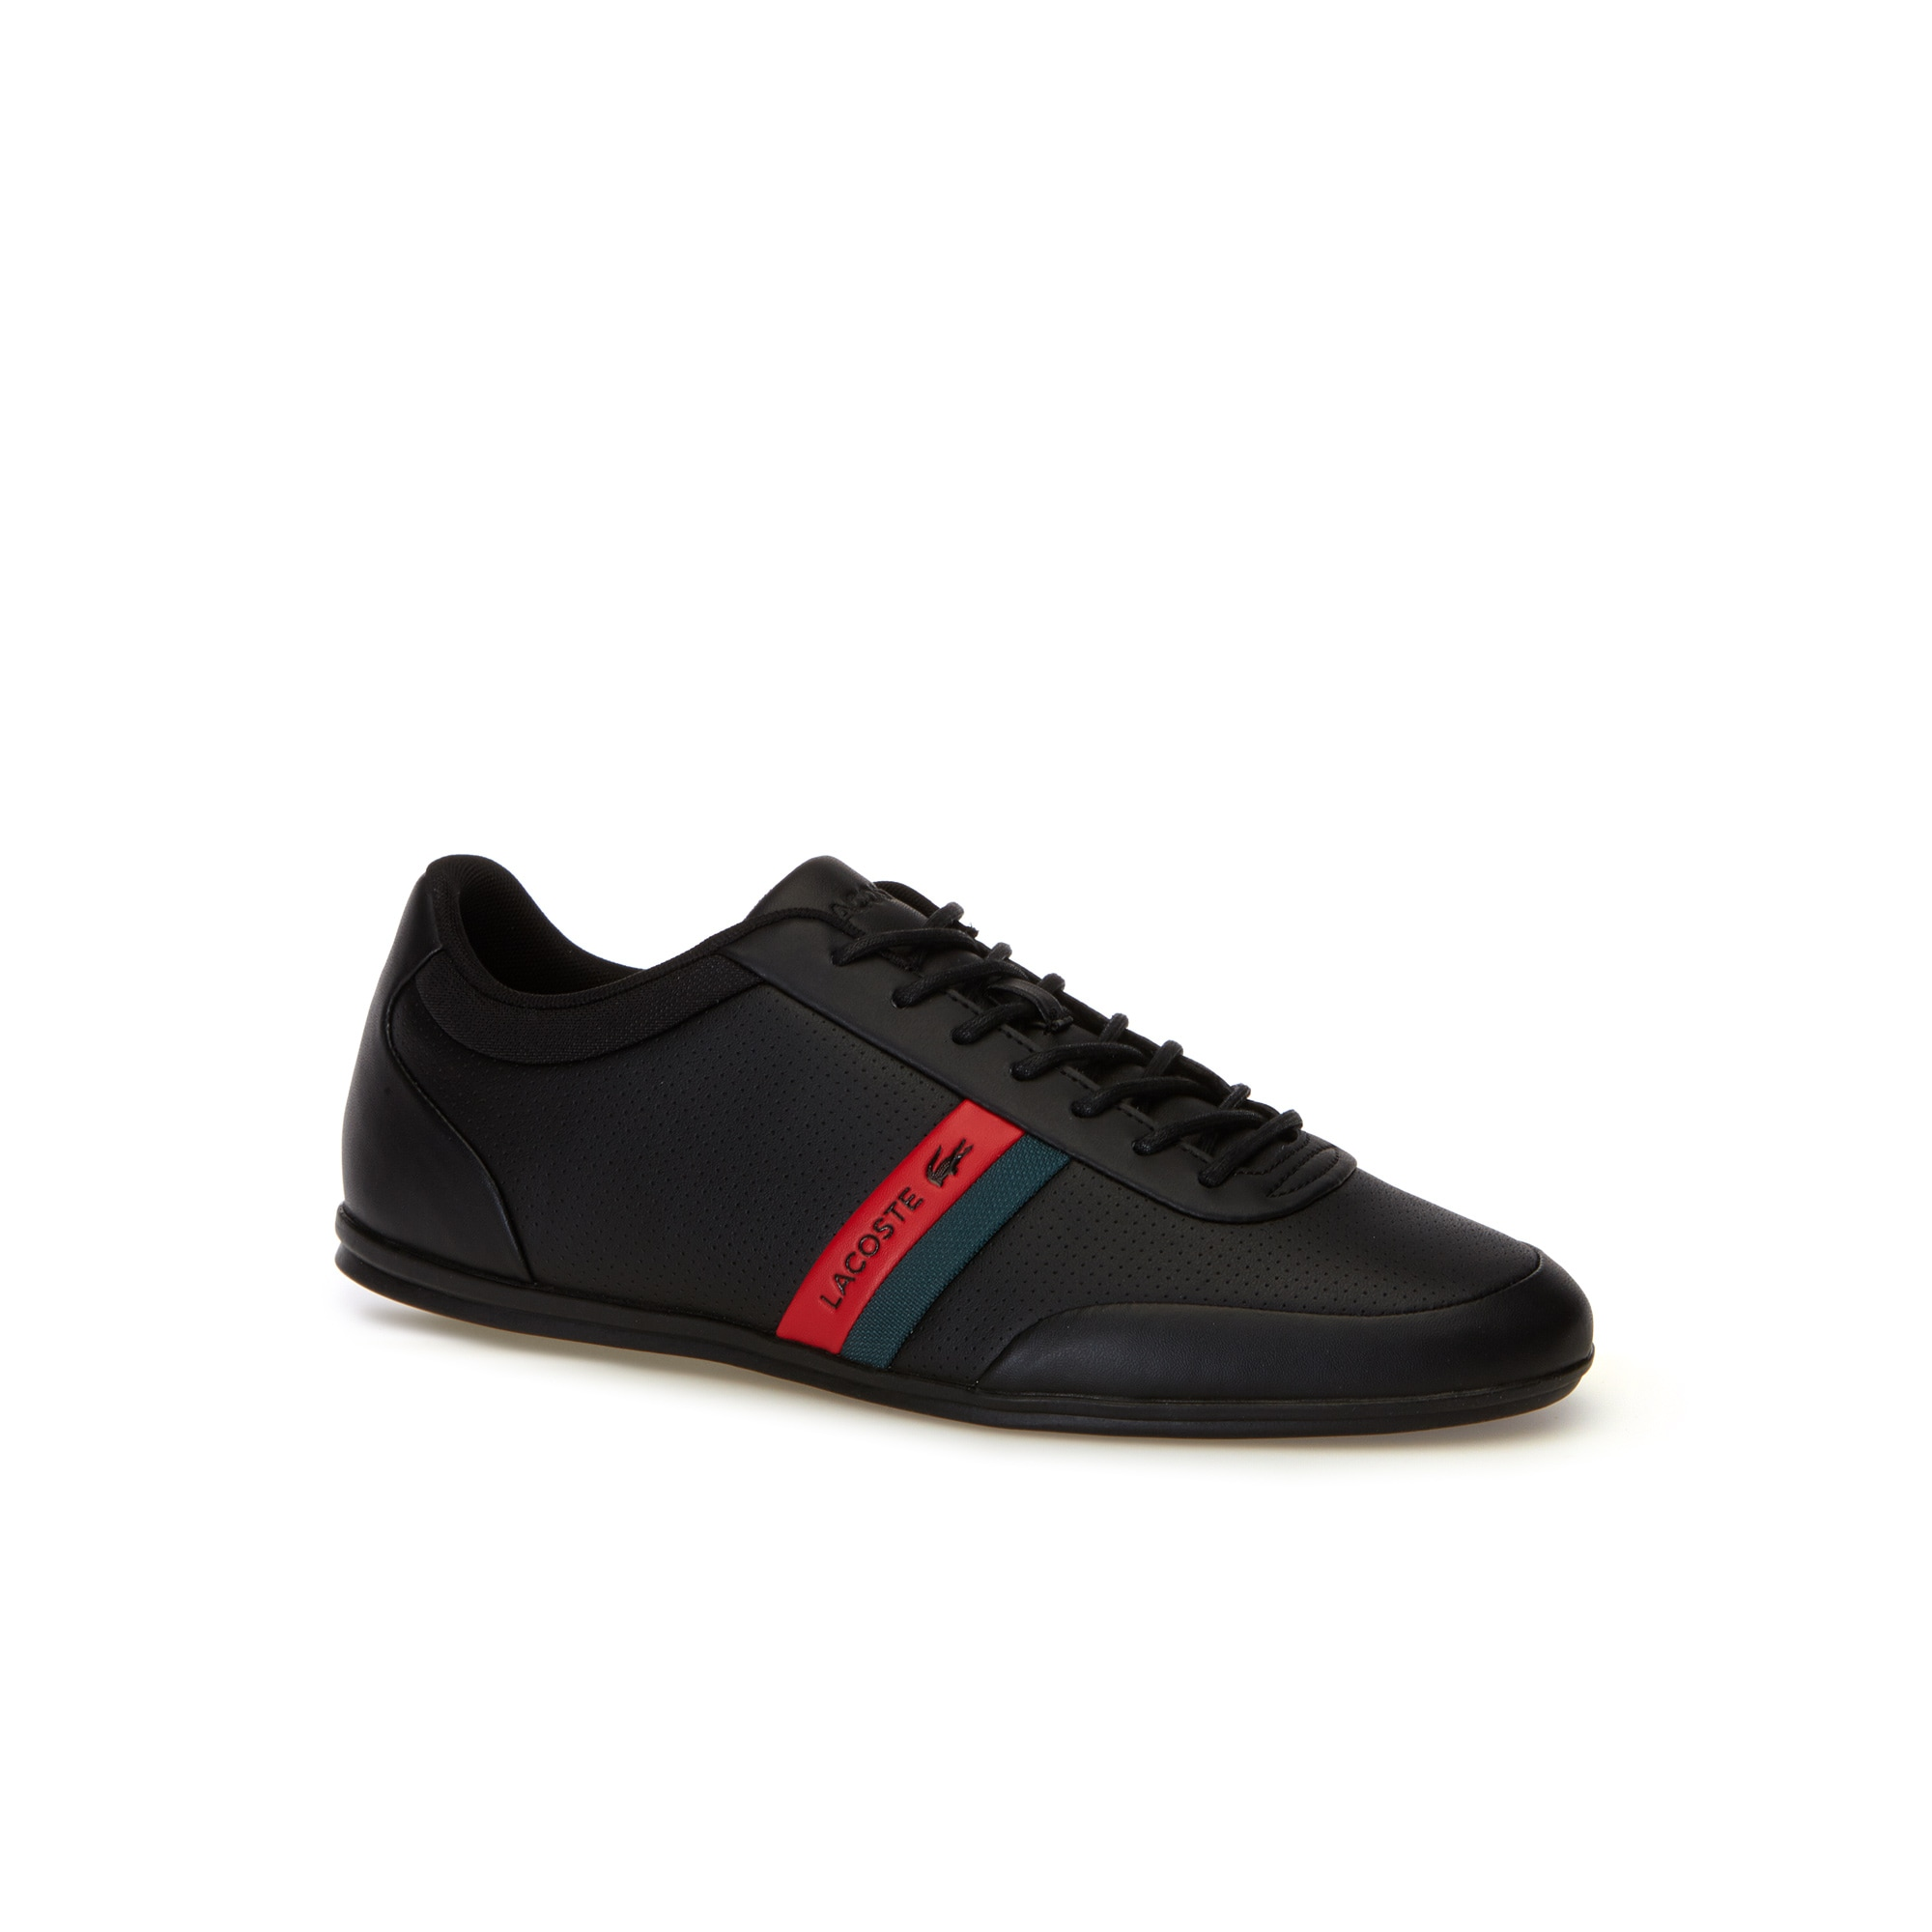 Mens Shoes Shoes For Men LACOSTE - How to get paint off shoes